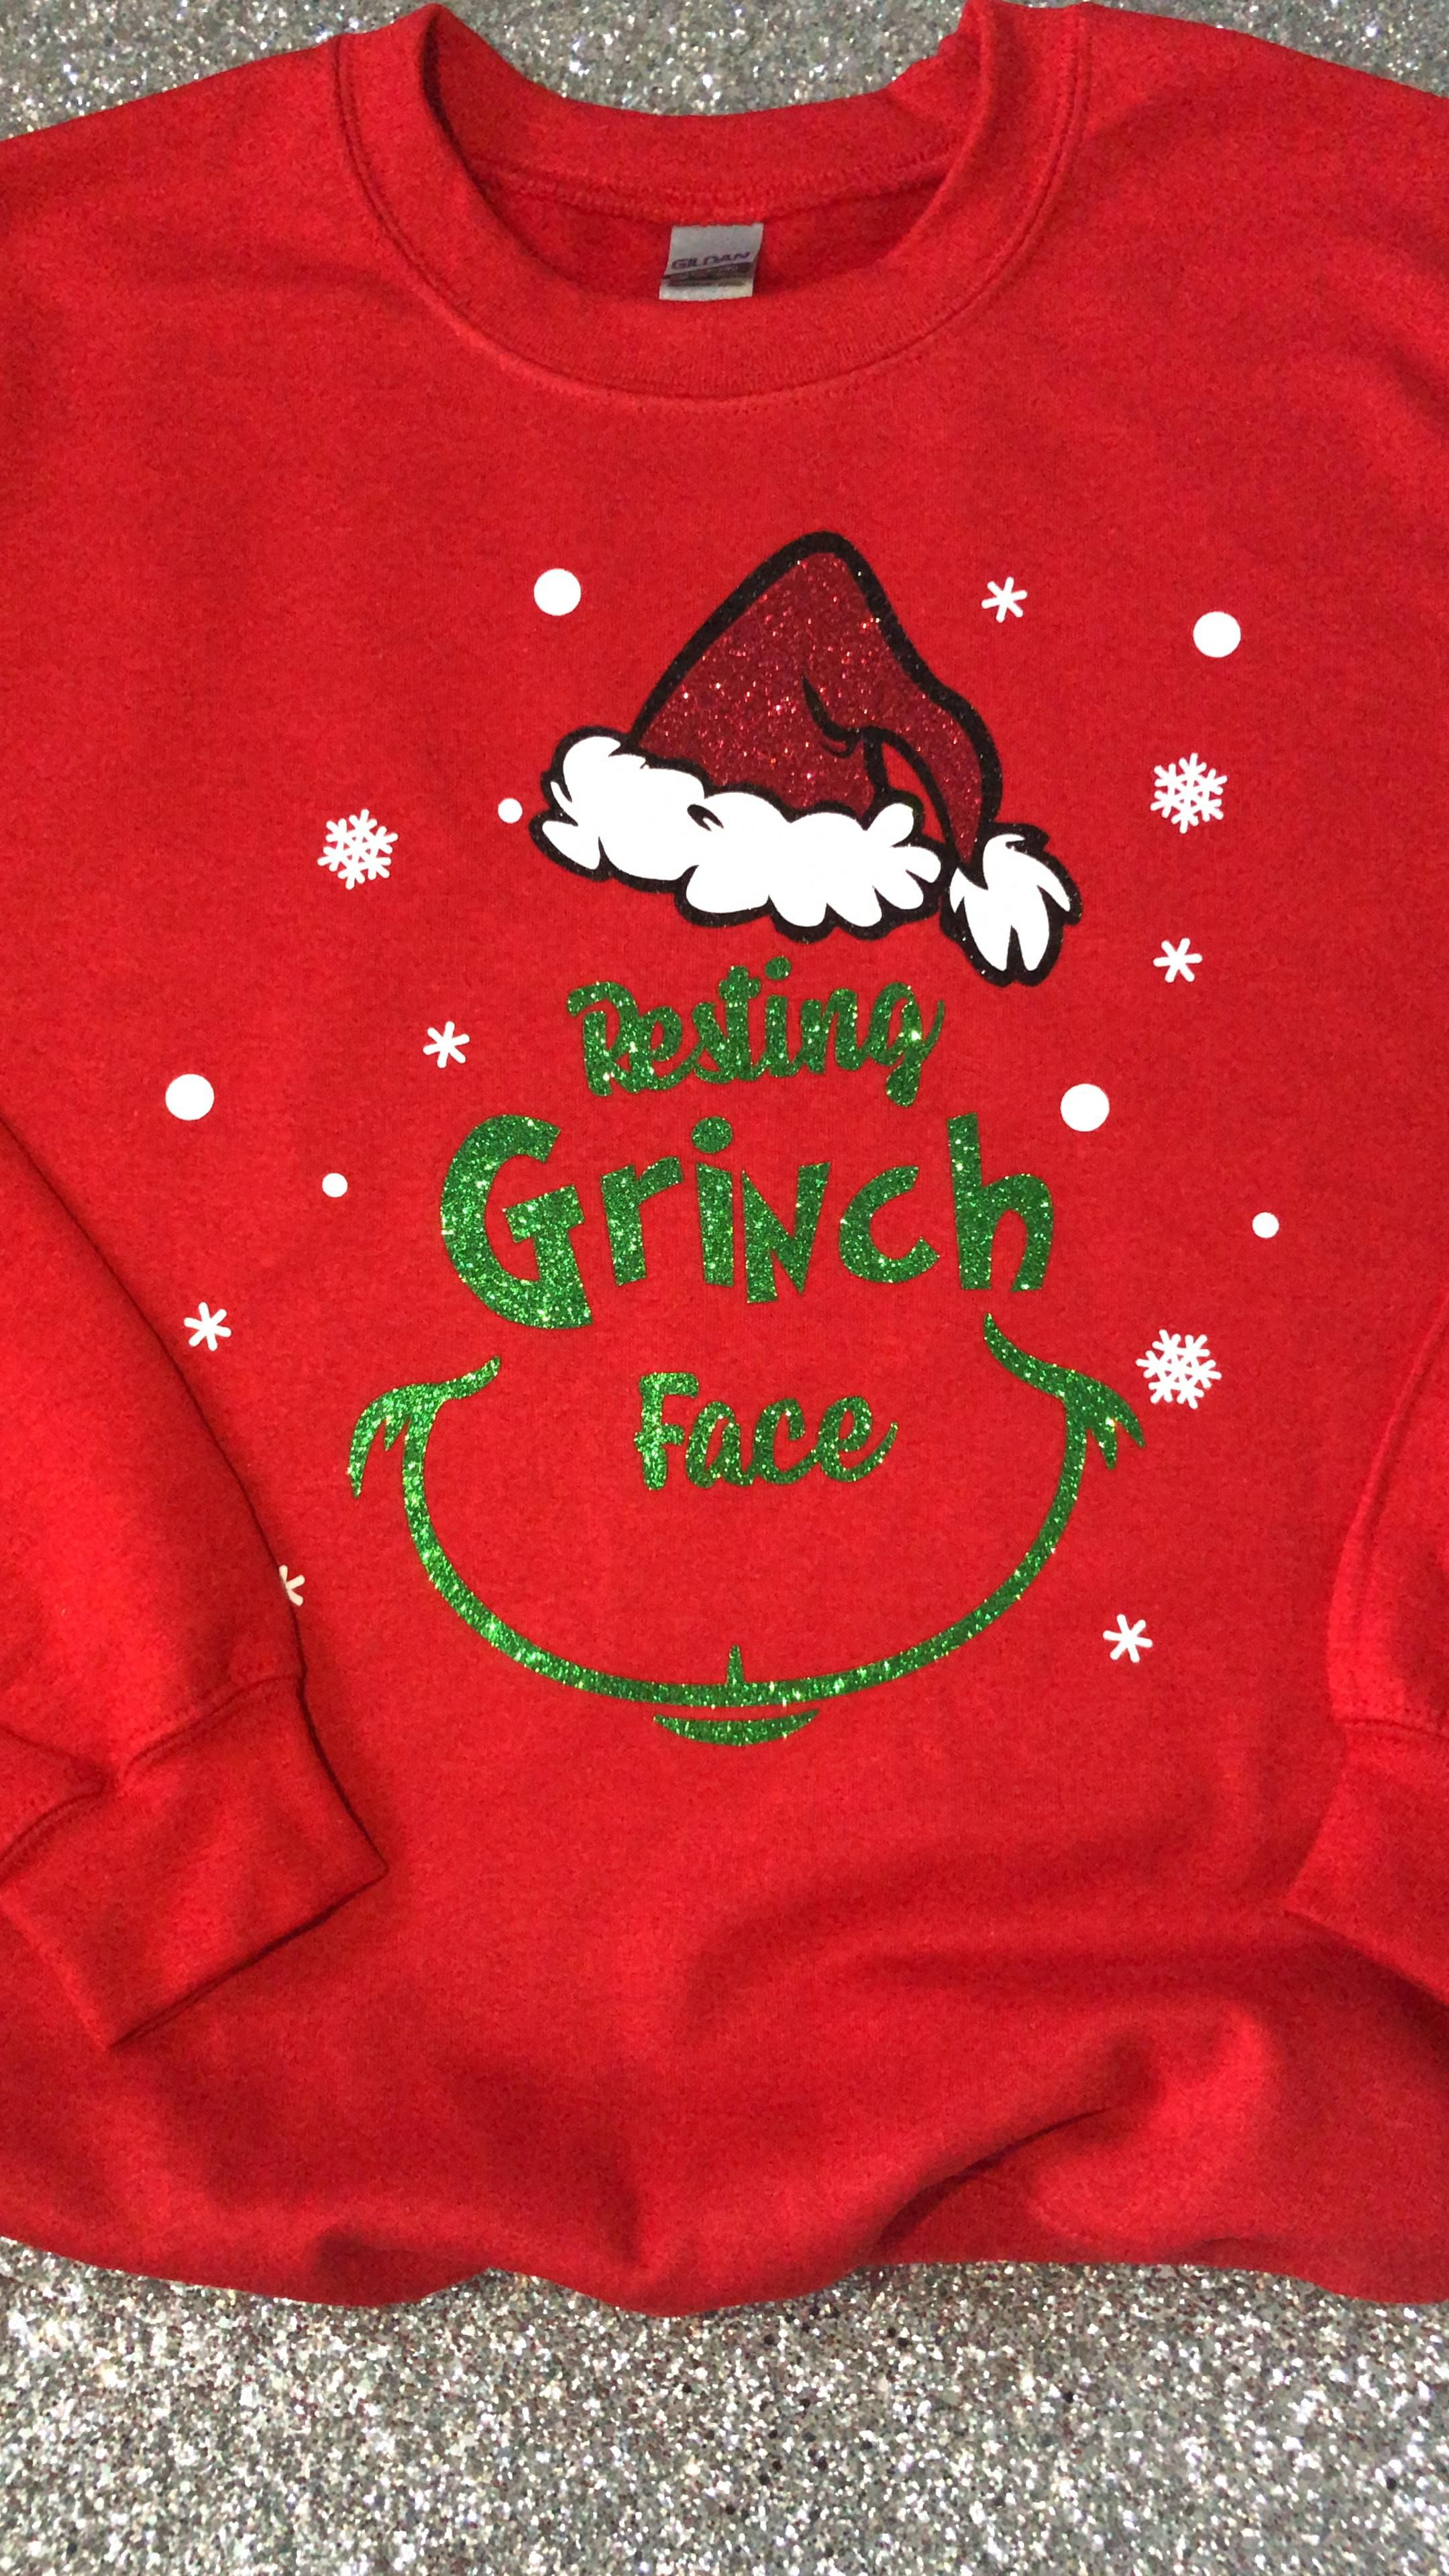 Resting Grinch Face Jumper, Christmas Jumper, Red